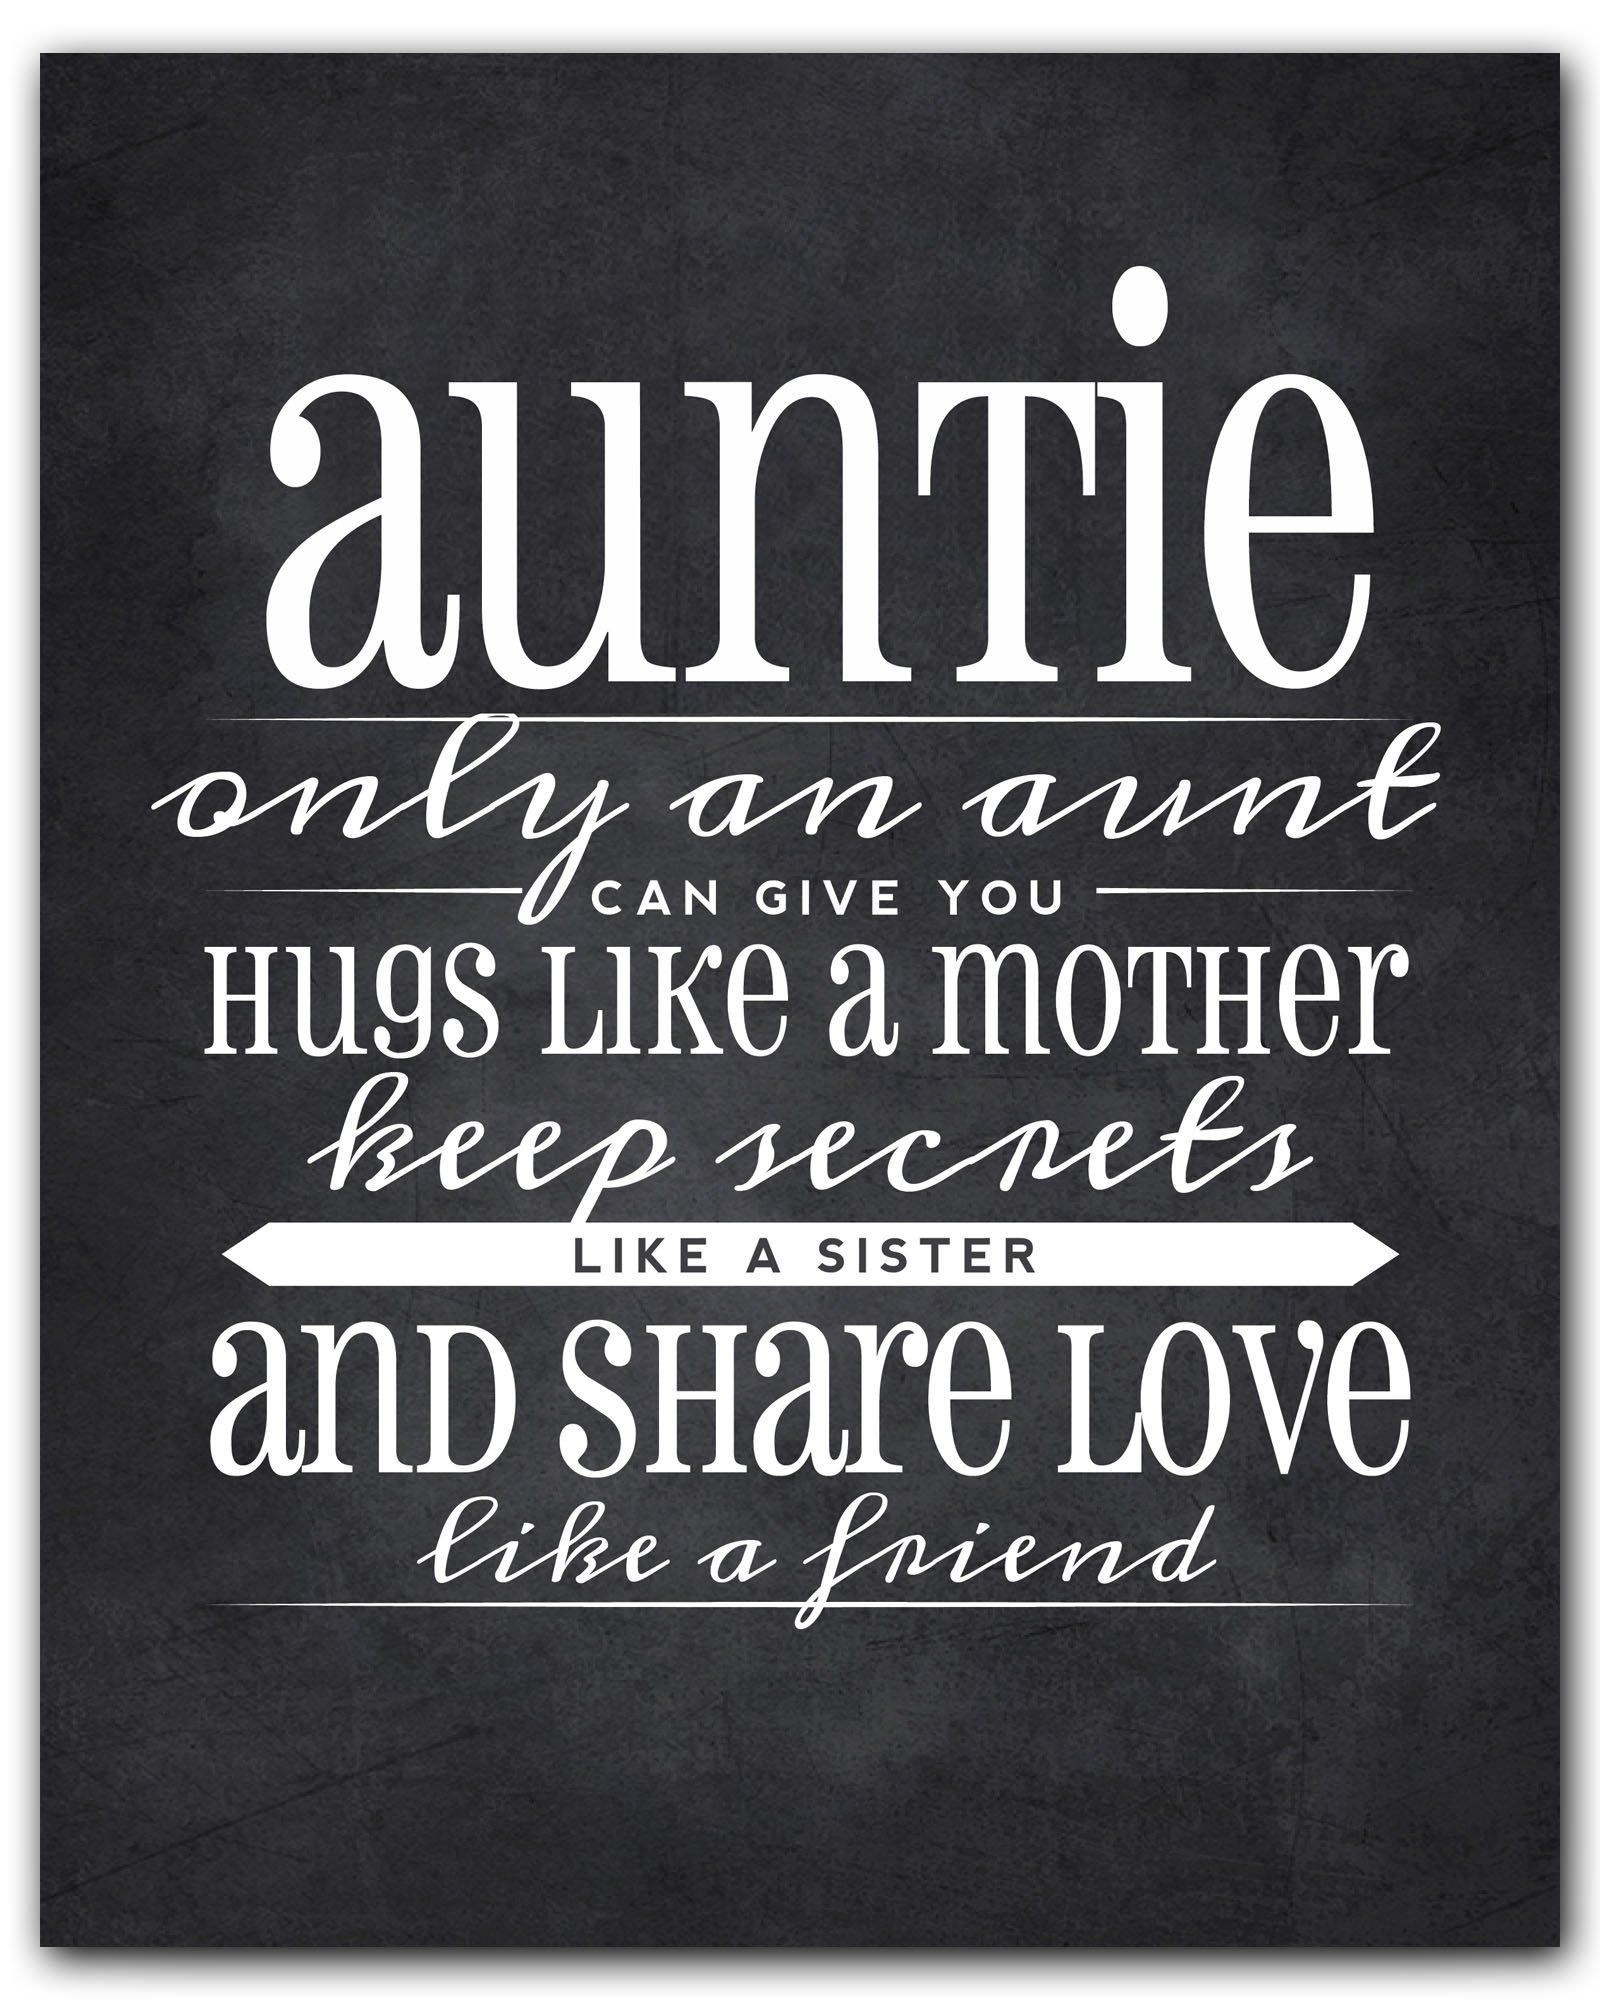 Auntie Gift, Auntie Quote Sign, Auntie Quote Chalkboard Wall Art, Best Auntie Gift, Aunt Gift from Niece, Aunt Quote by Ocean Drop Designs